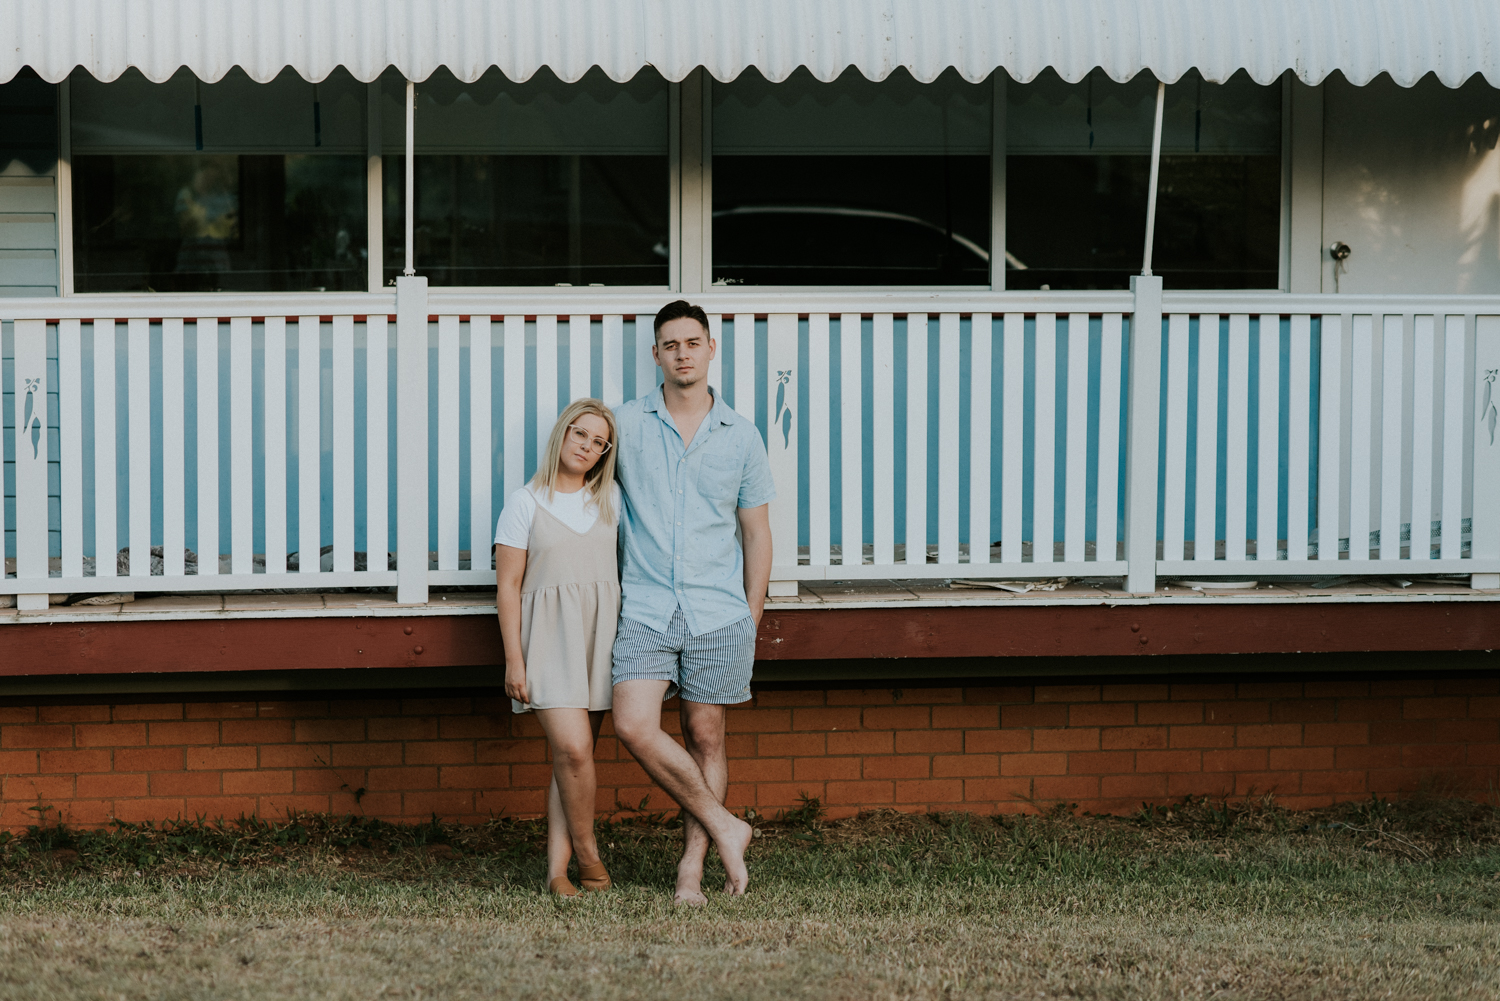 Brisbane Wedding Photographer | Engagement-Elopement Photography-44.jpg